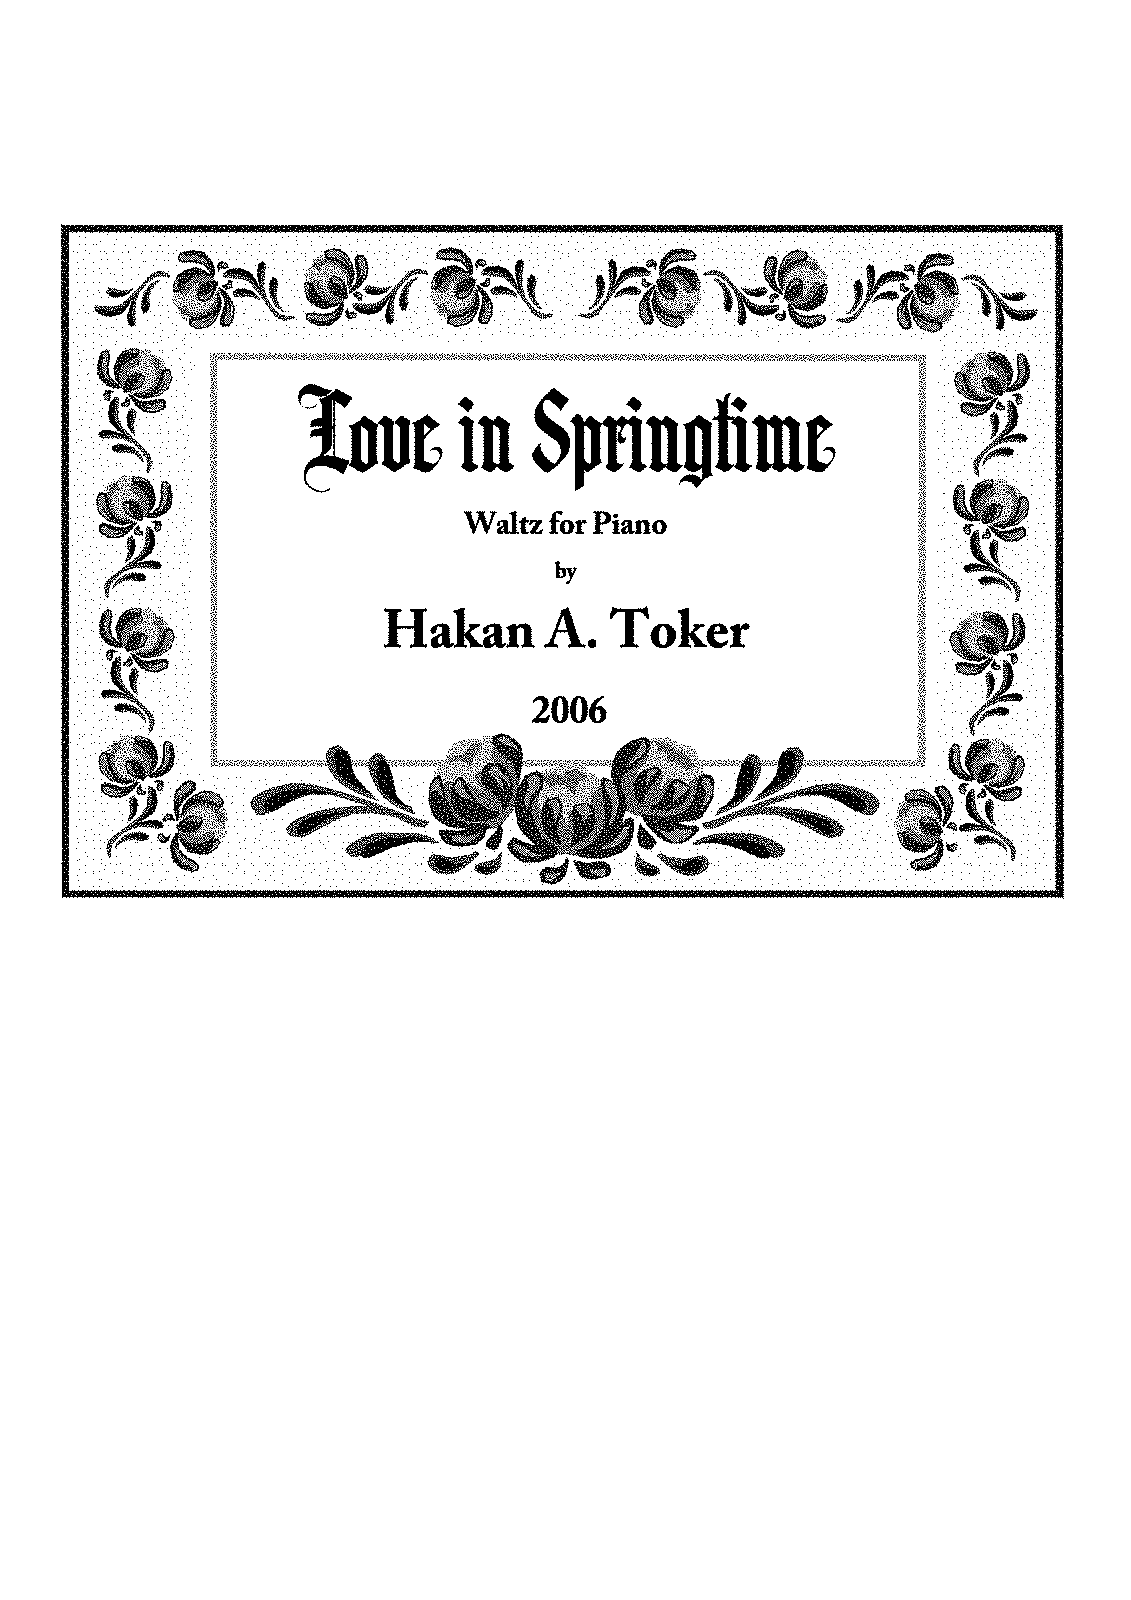 PMLP579209-Love in Springtime by Hakan A. Toker.pdf